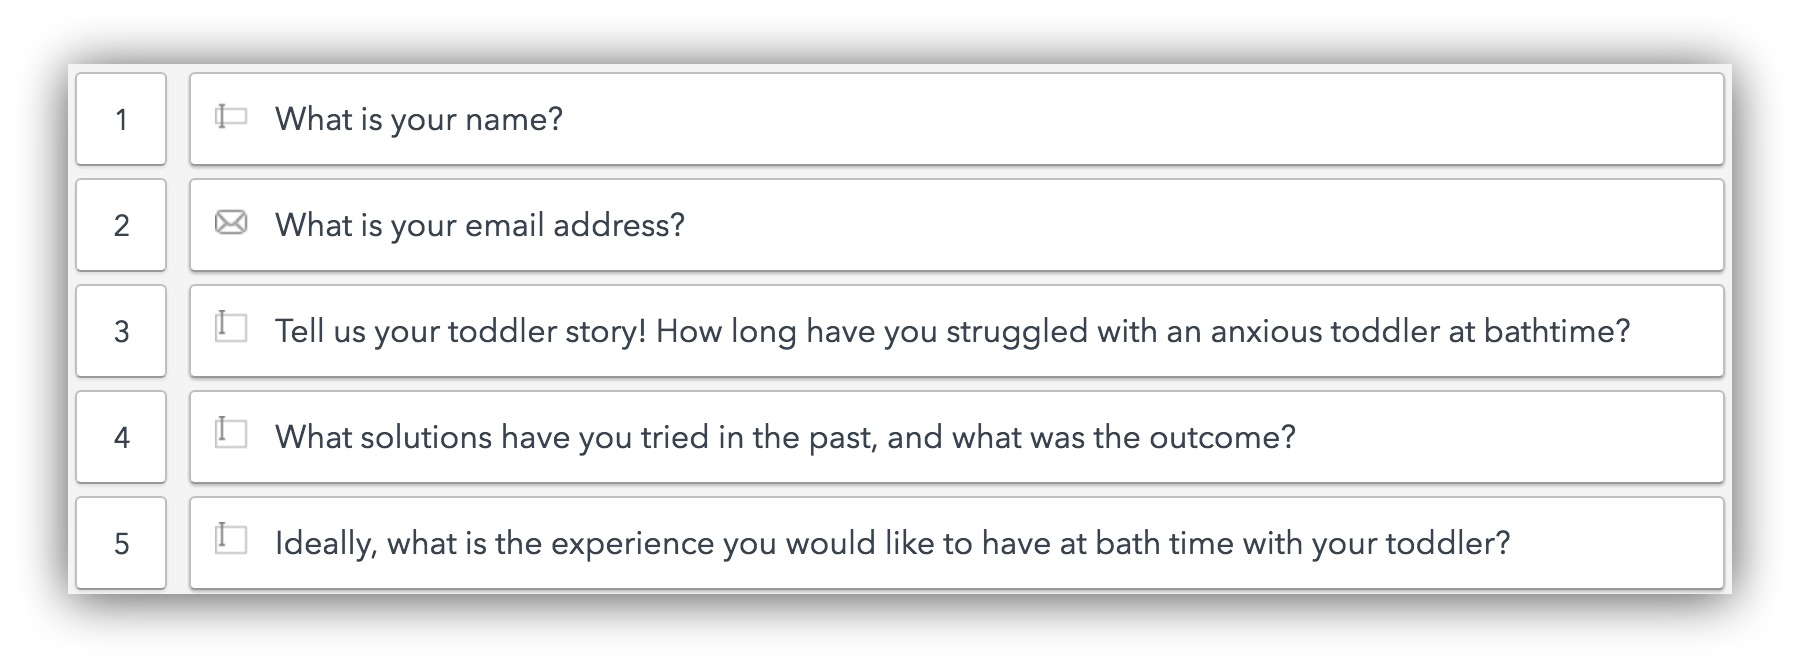 Screenshot showing questions about a consumer